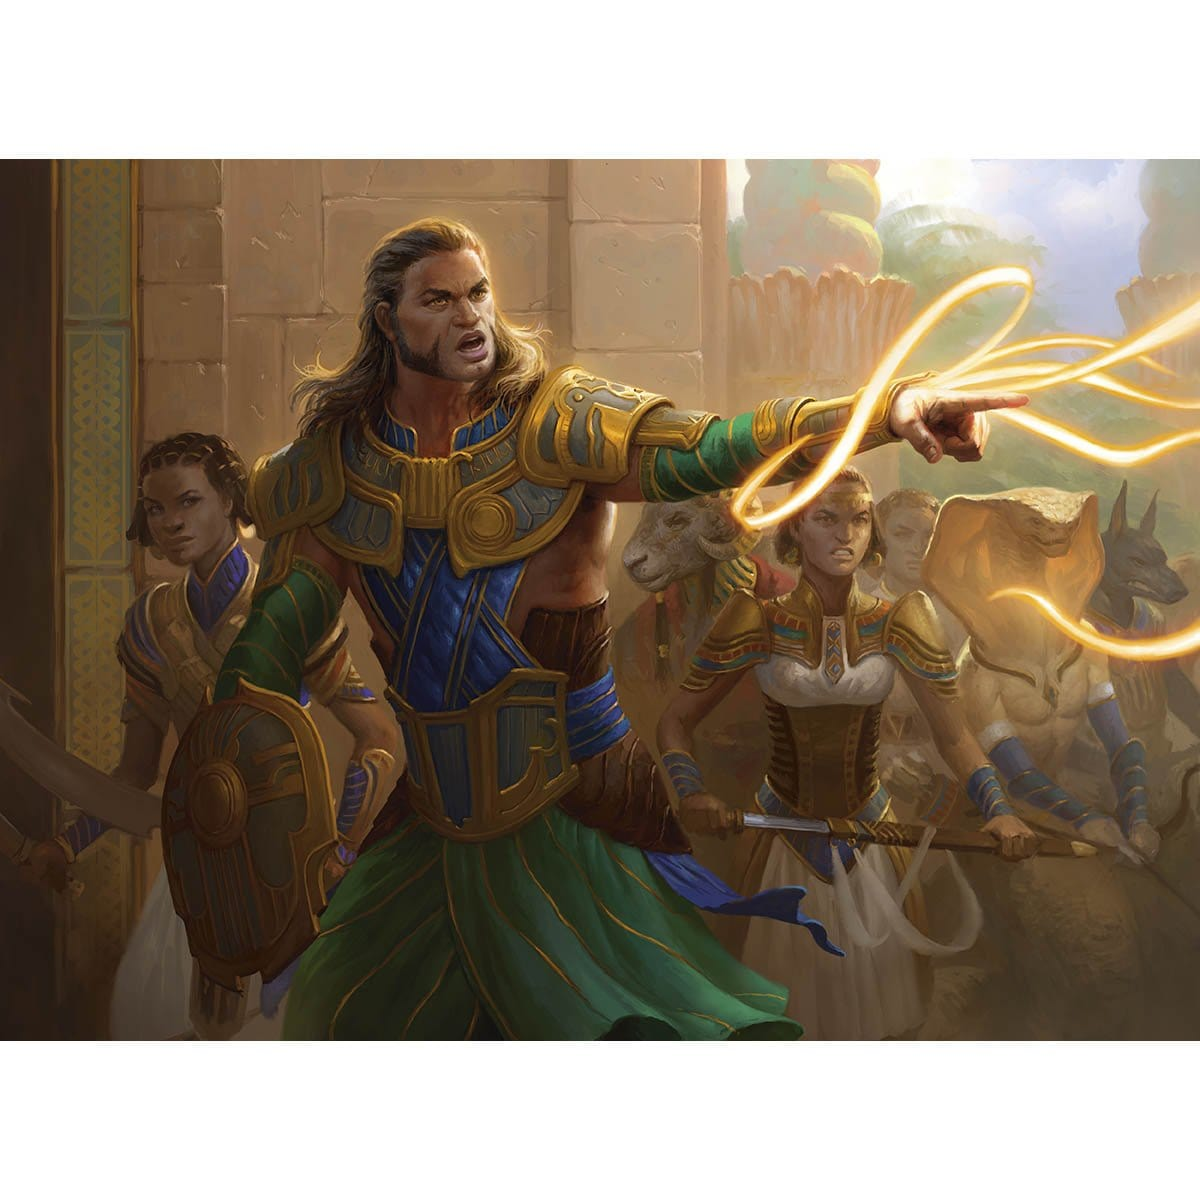 Gideon's Resolve Print - Print - Original Magic Art - Accessories for Magic the Gathering and other card games